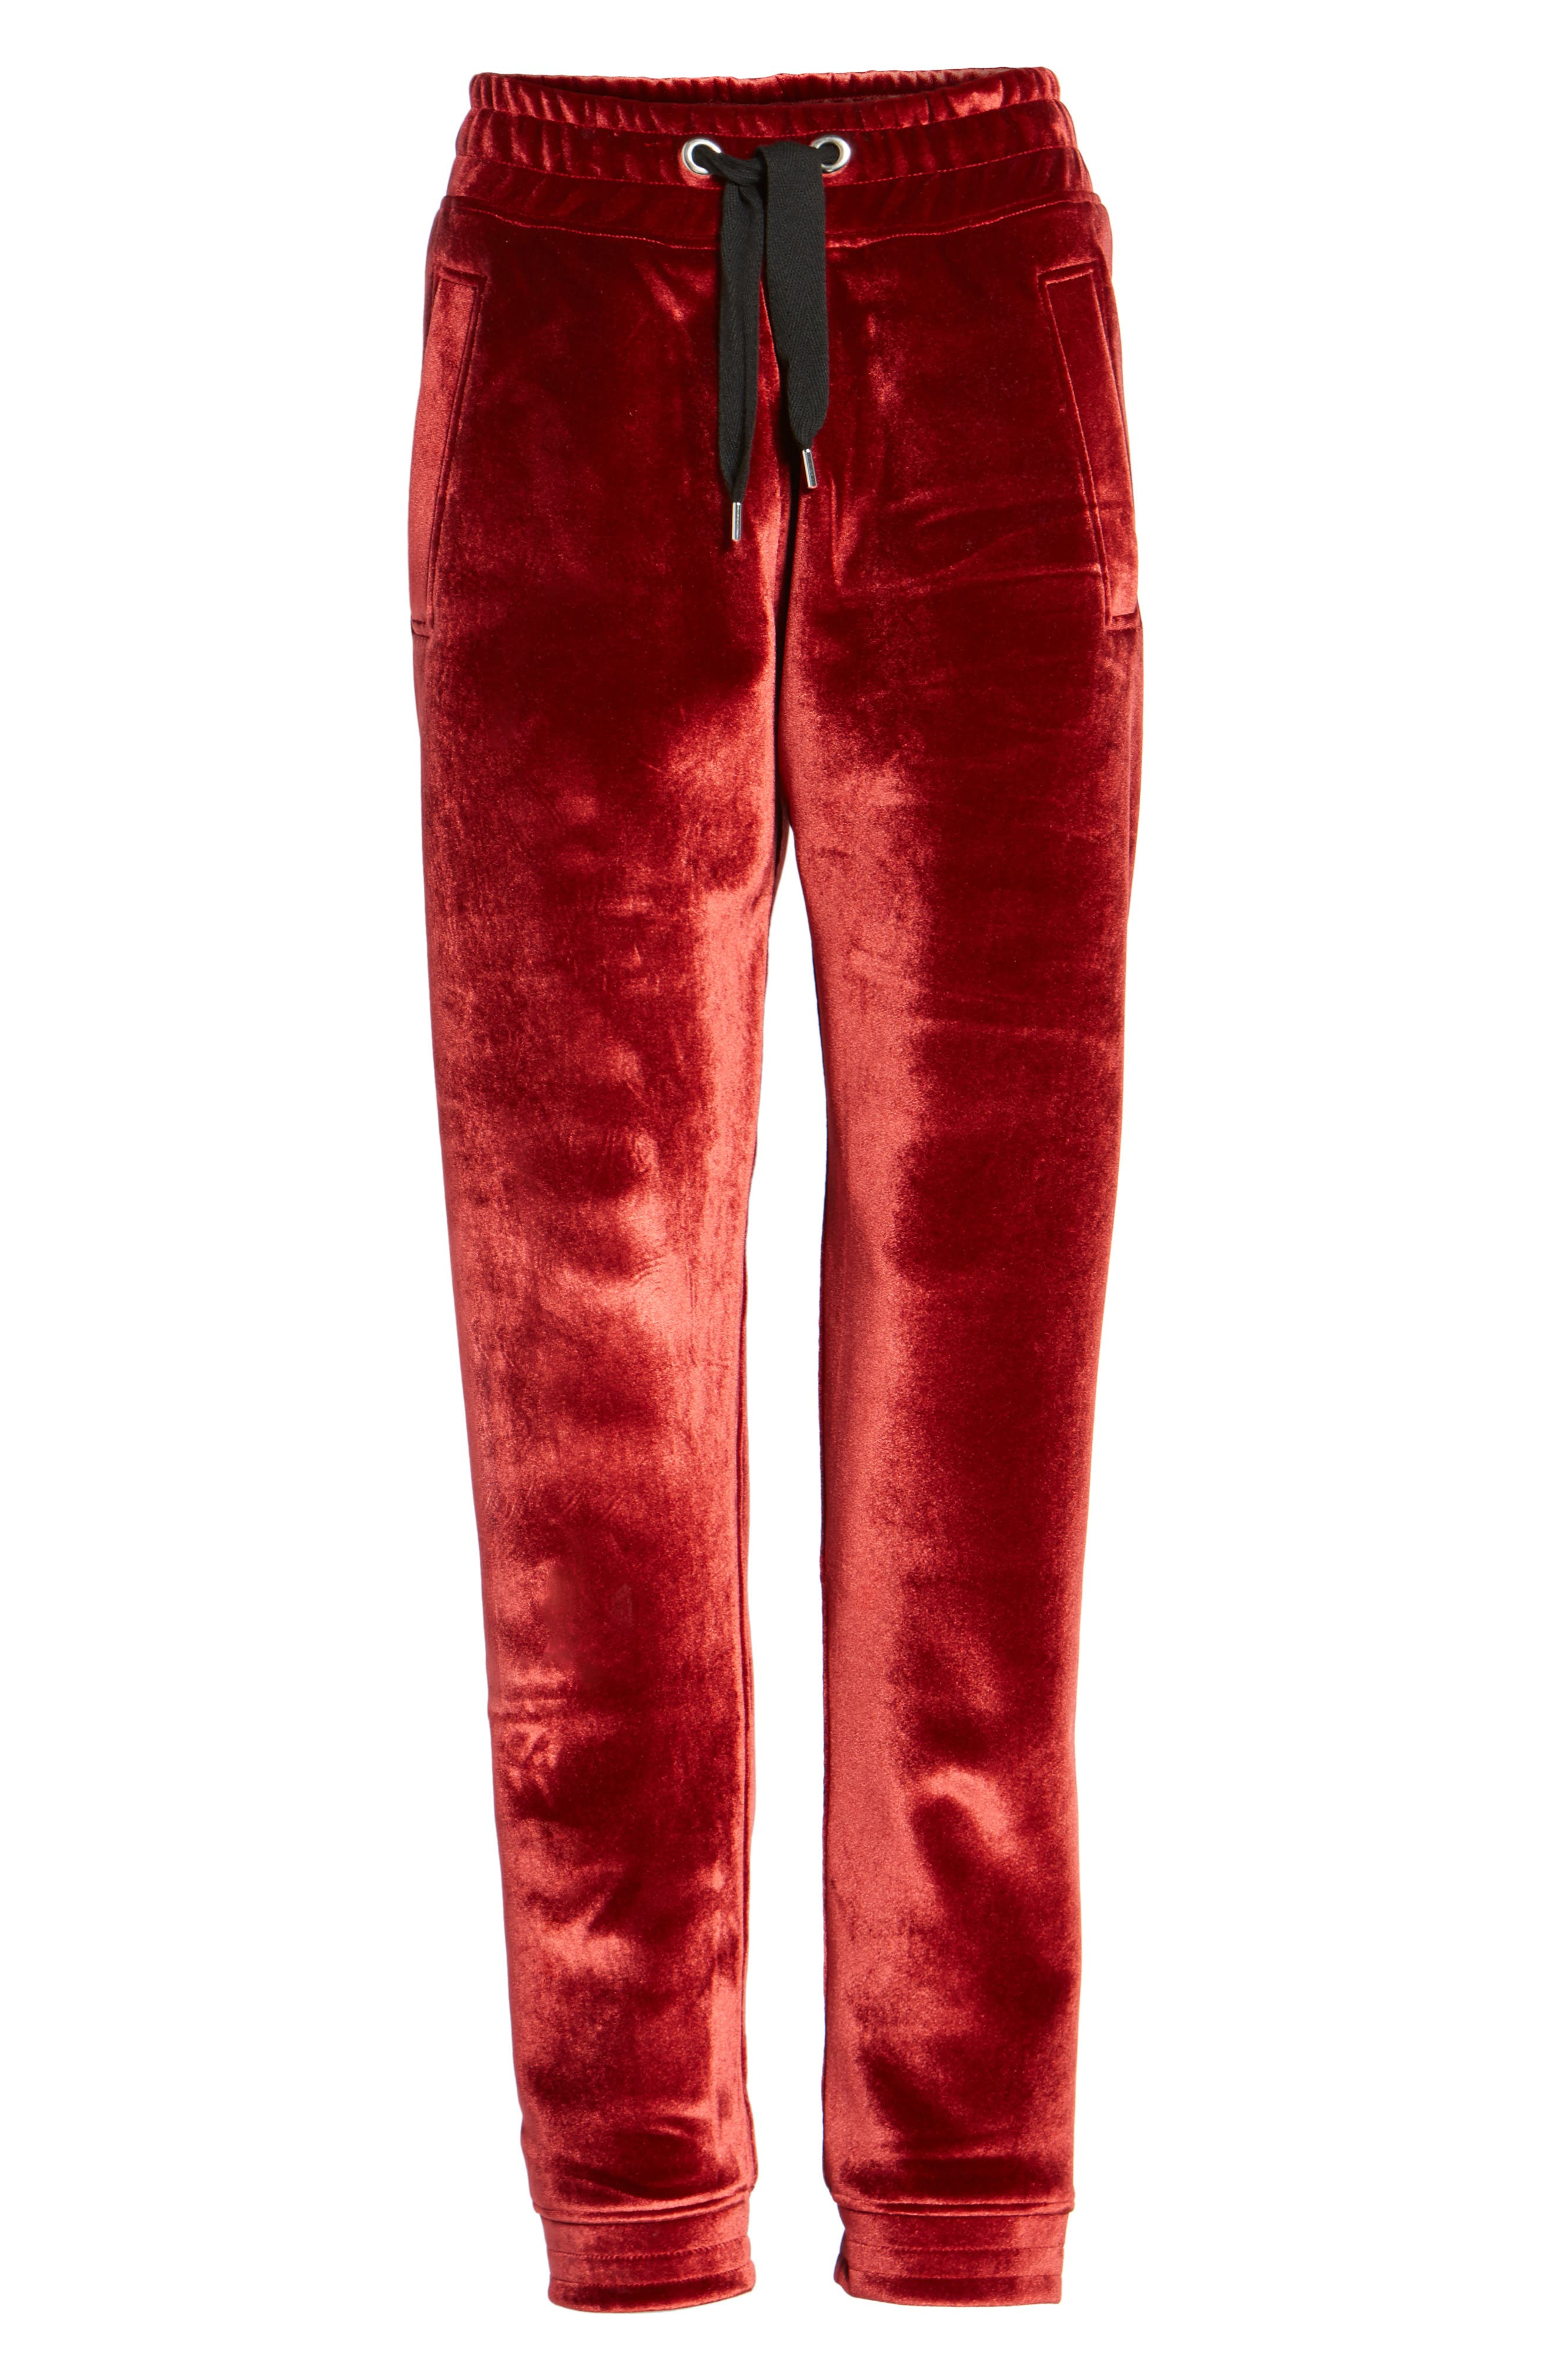 Velvet Jogger Pants,                             Alternate thumbnail 7, color,                             600